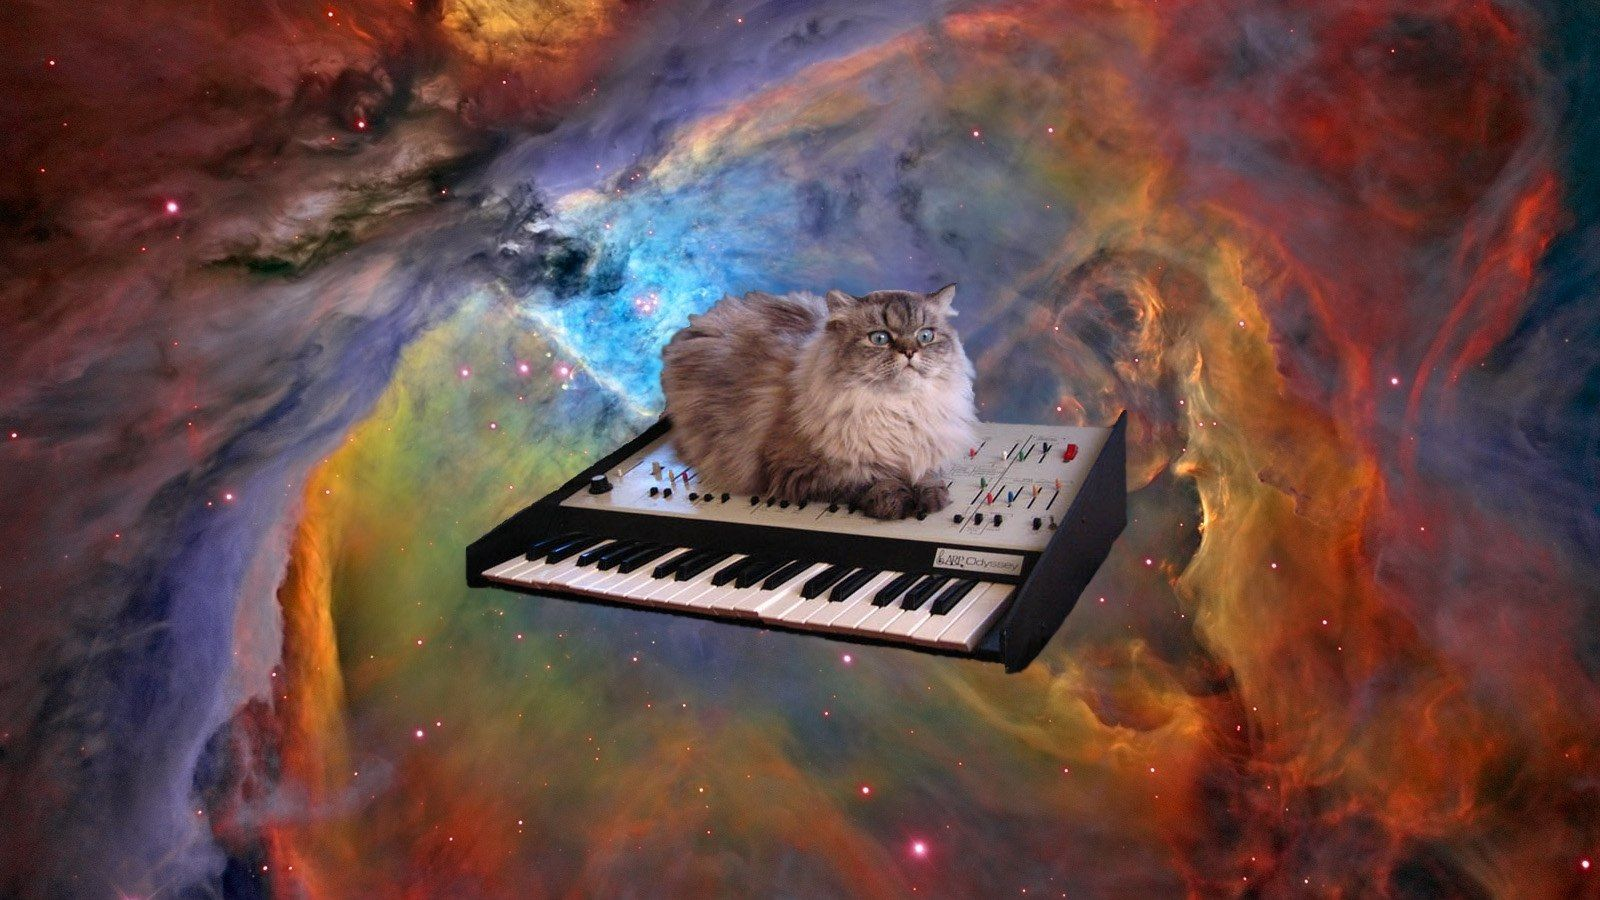 Wallpaper cats in space cat in space wallpaper 1600x900 - Space kitty wallpaper ...